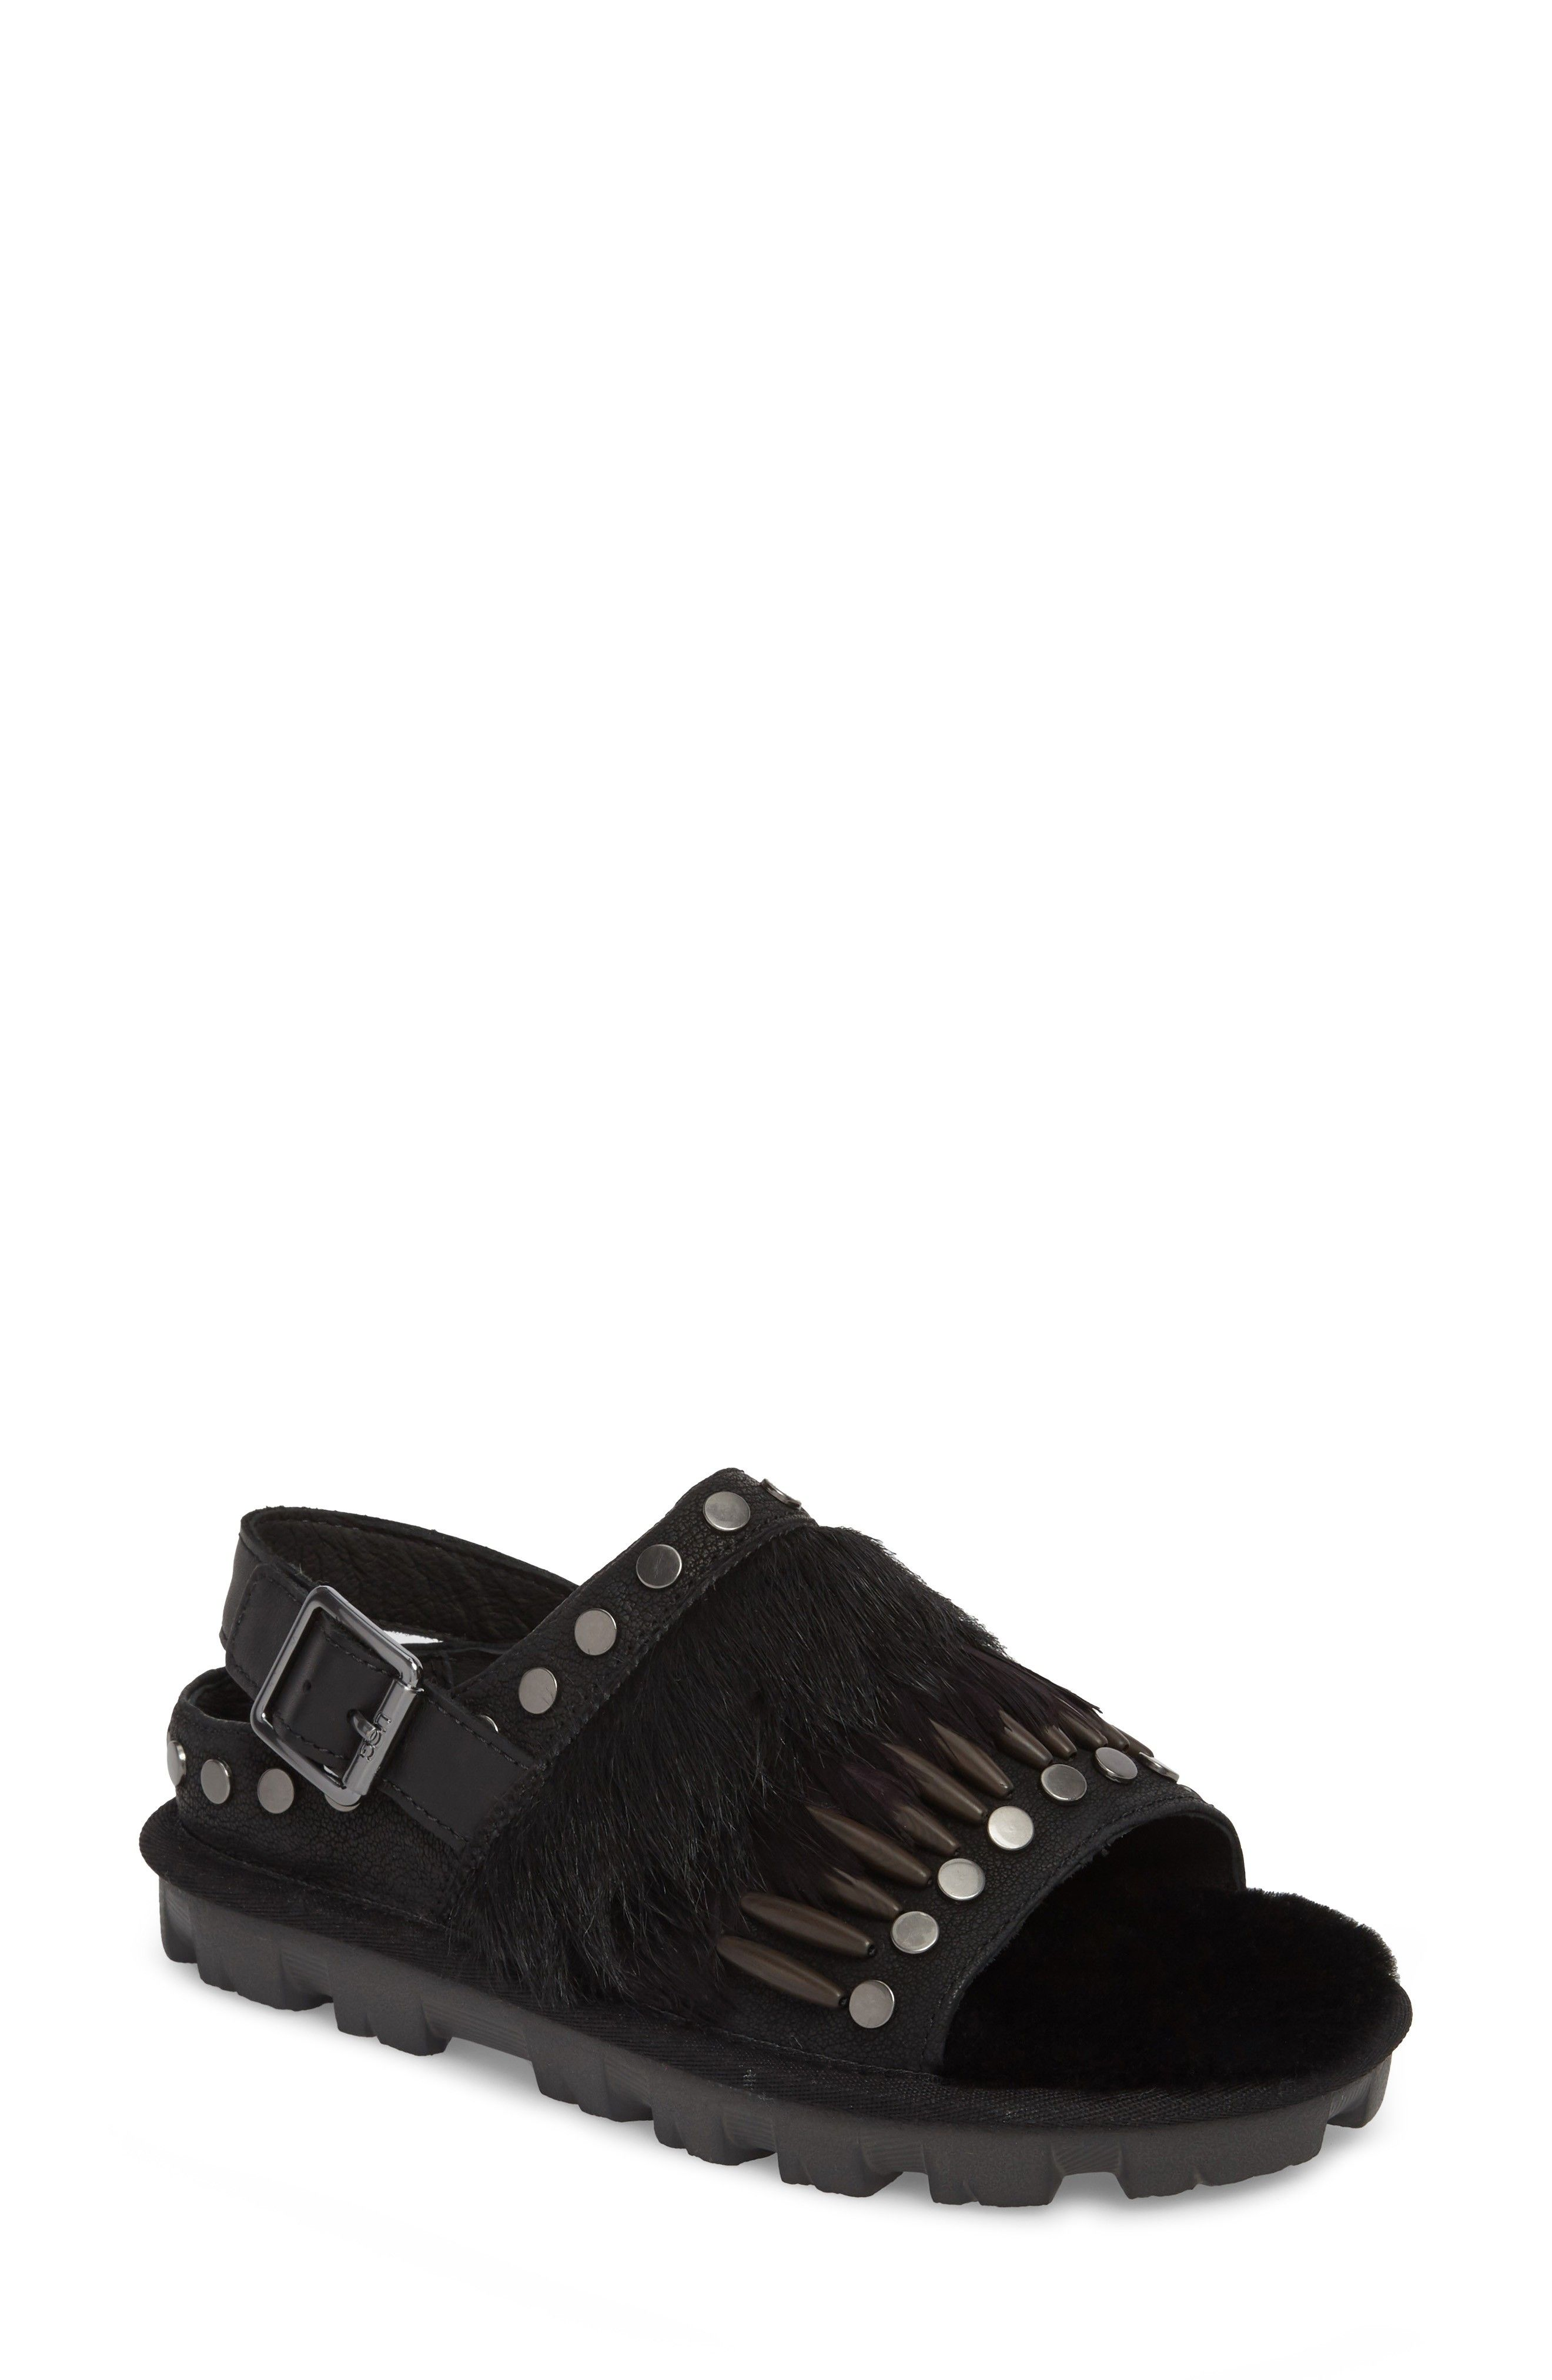 504e1ee70fd UGG | Biker Chic Genuine Shearling & Feather Sandal #Shoes #Sandals ...